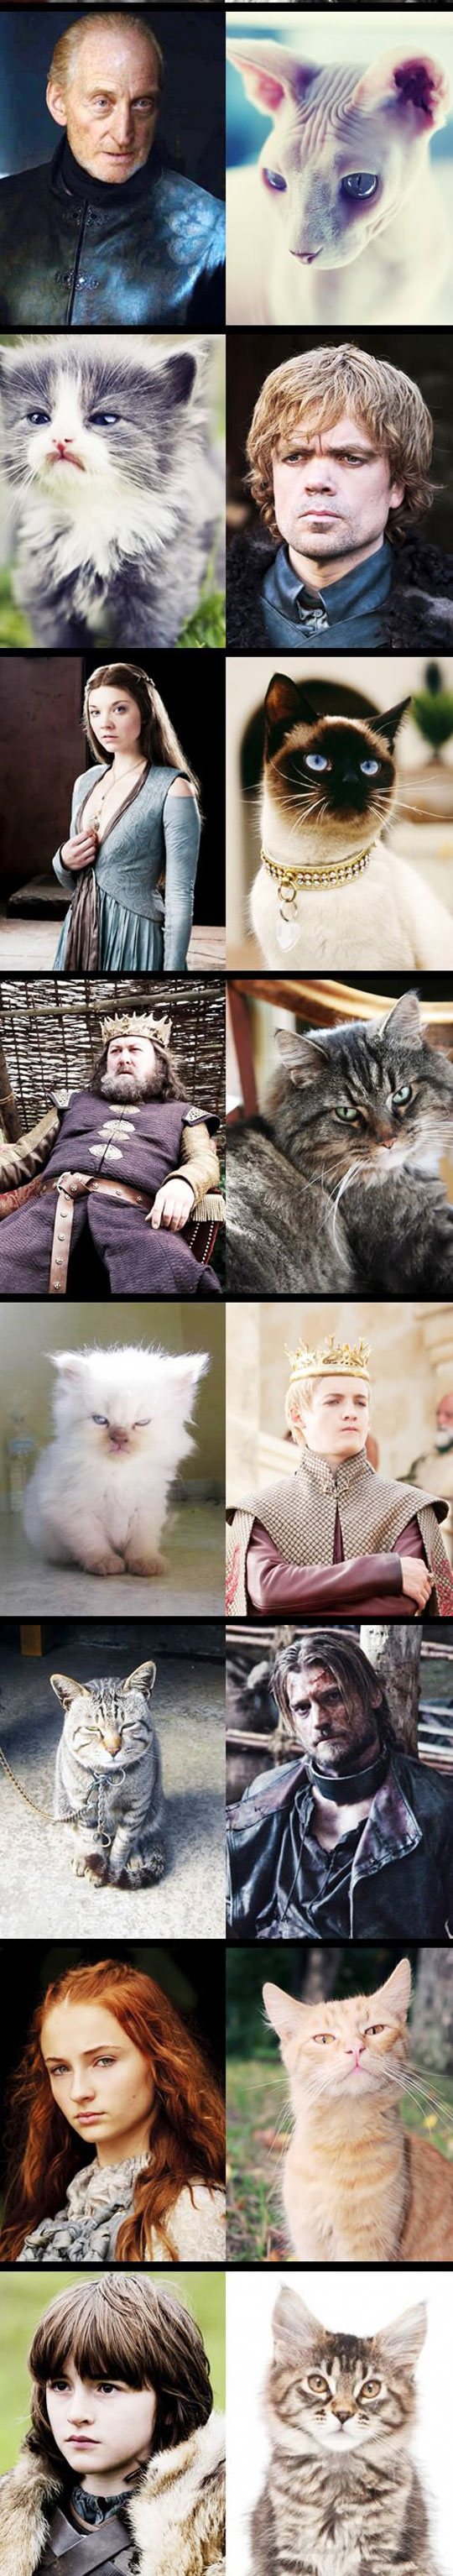 funny-Game-Thrones-cats-Stark